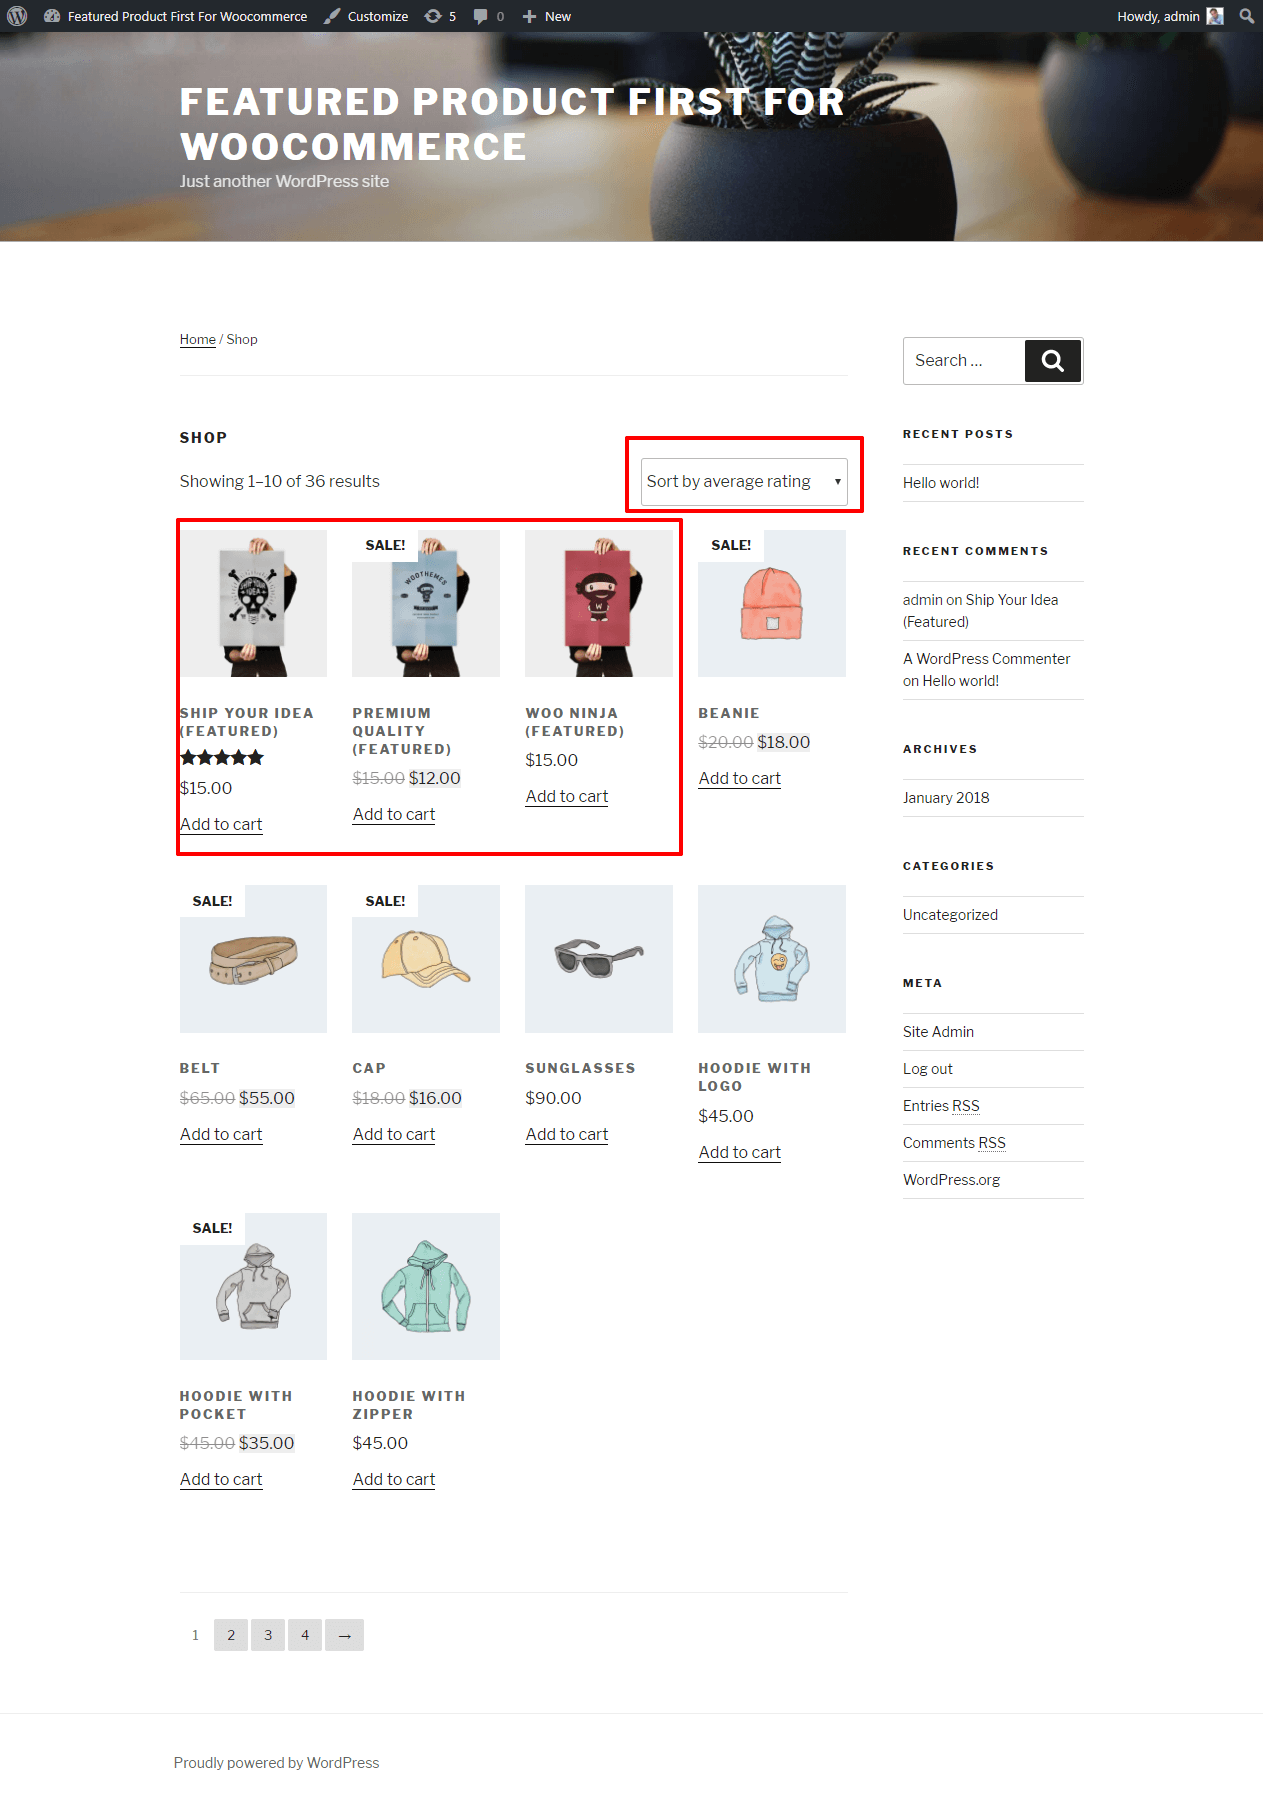 featured-products-first-for-woocommerce screenshot 3